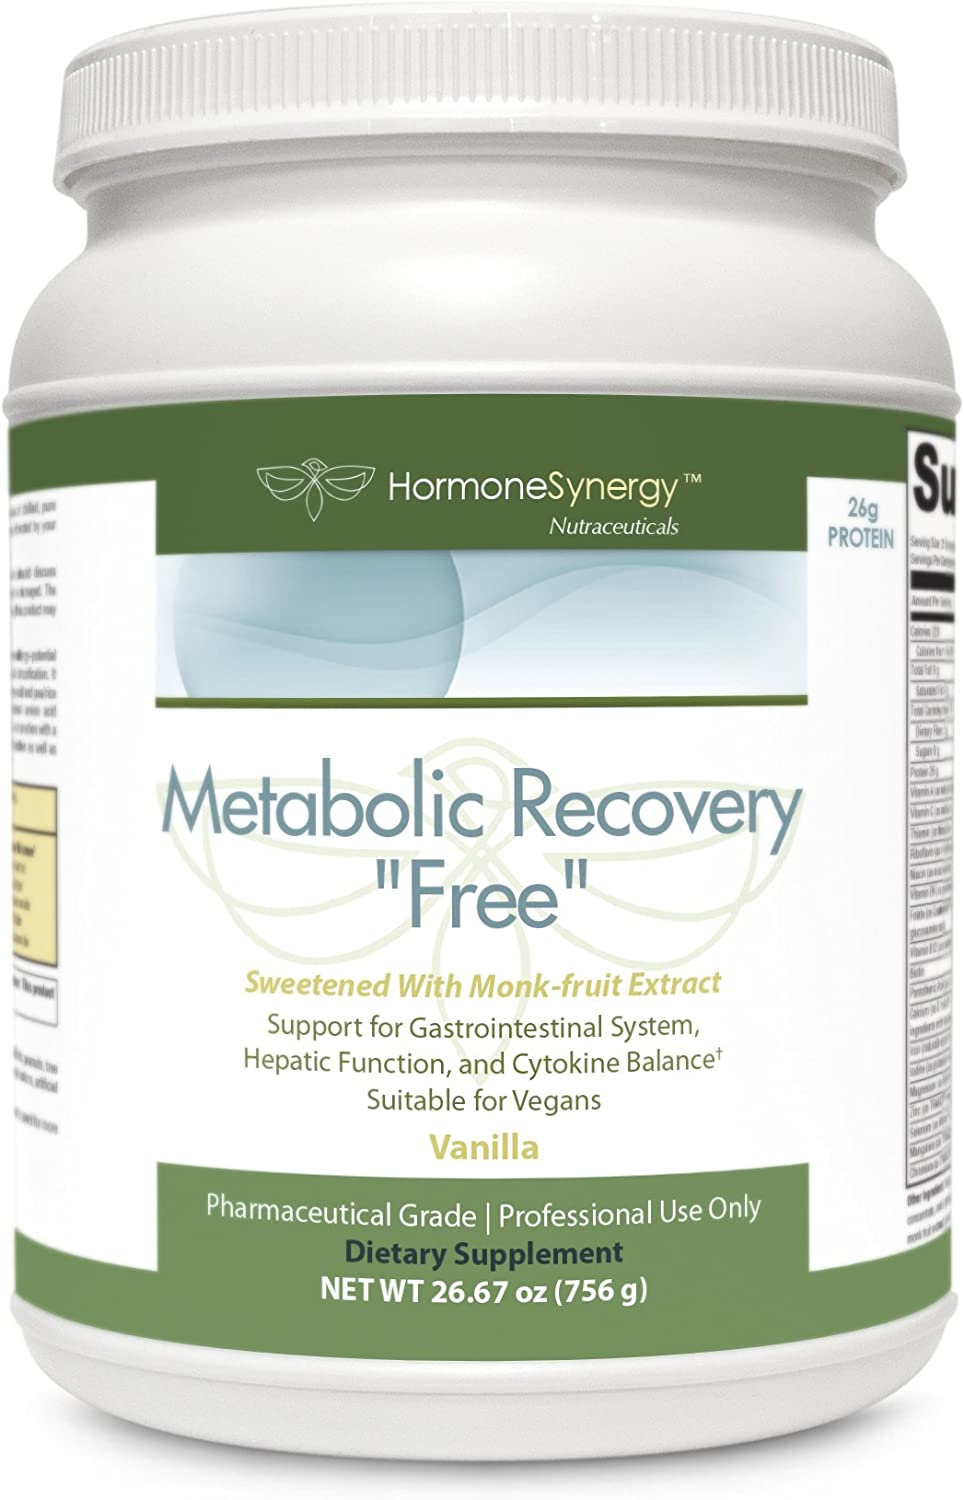 Metabolic Recovery Formula Free Sugar Stevia Free Gastrointestinal, Hepatic Intestinal Support* 26g Vegan Protein sweetened w Monk-Fruit Extract Non-GMO Pea Rice